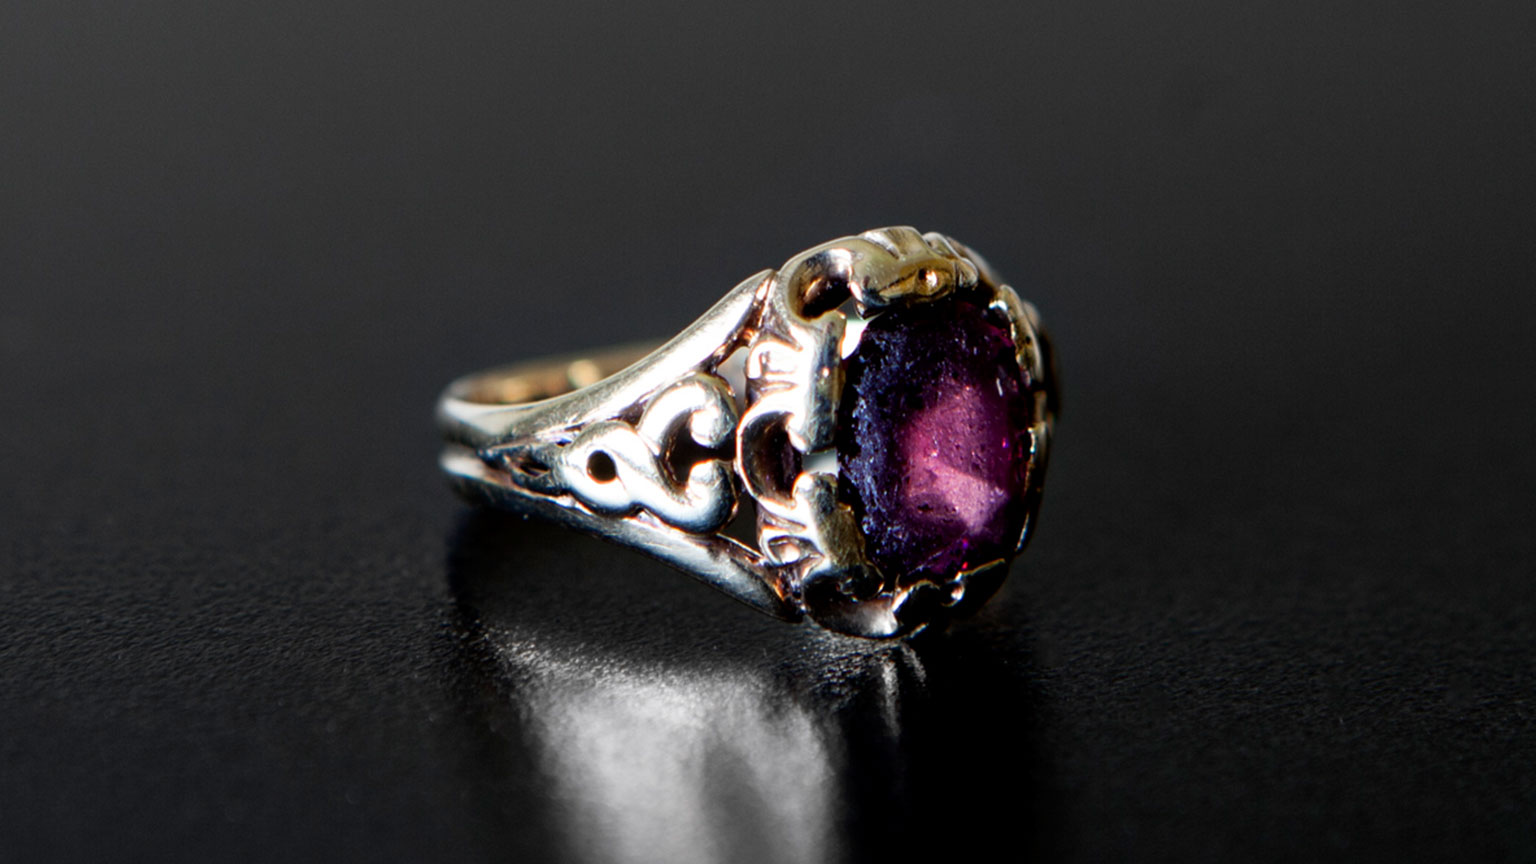 Engagement Ring Given by Keats to Fanny Brawne